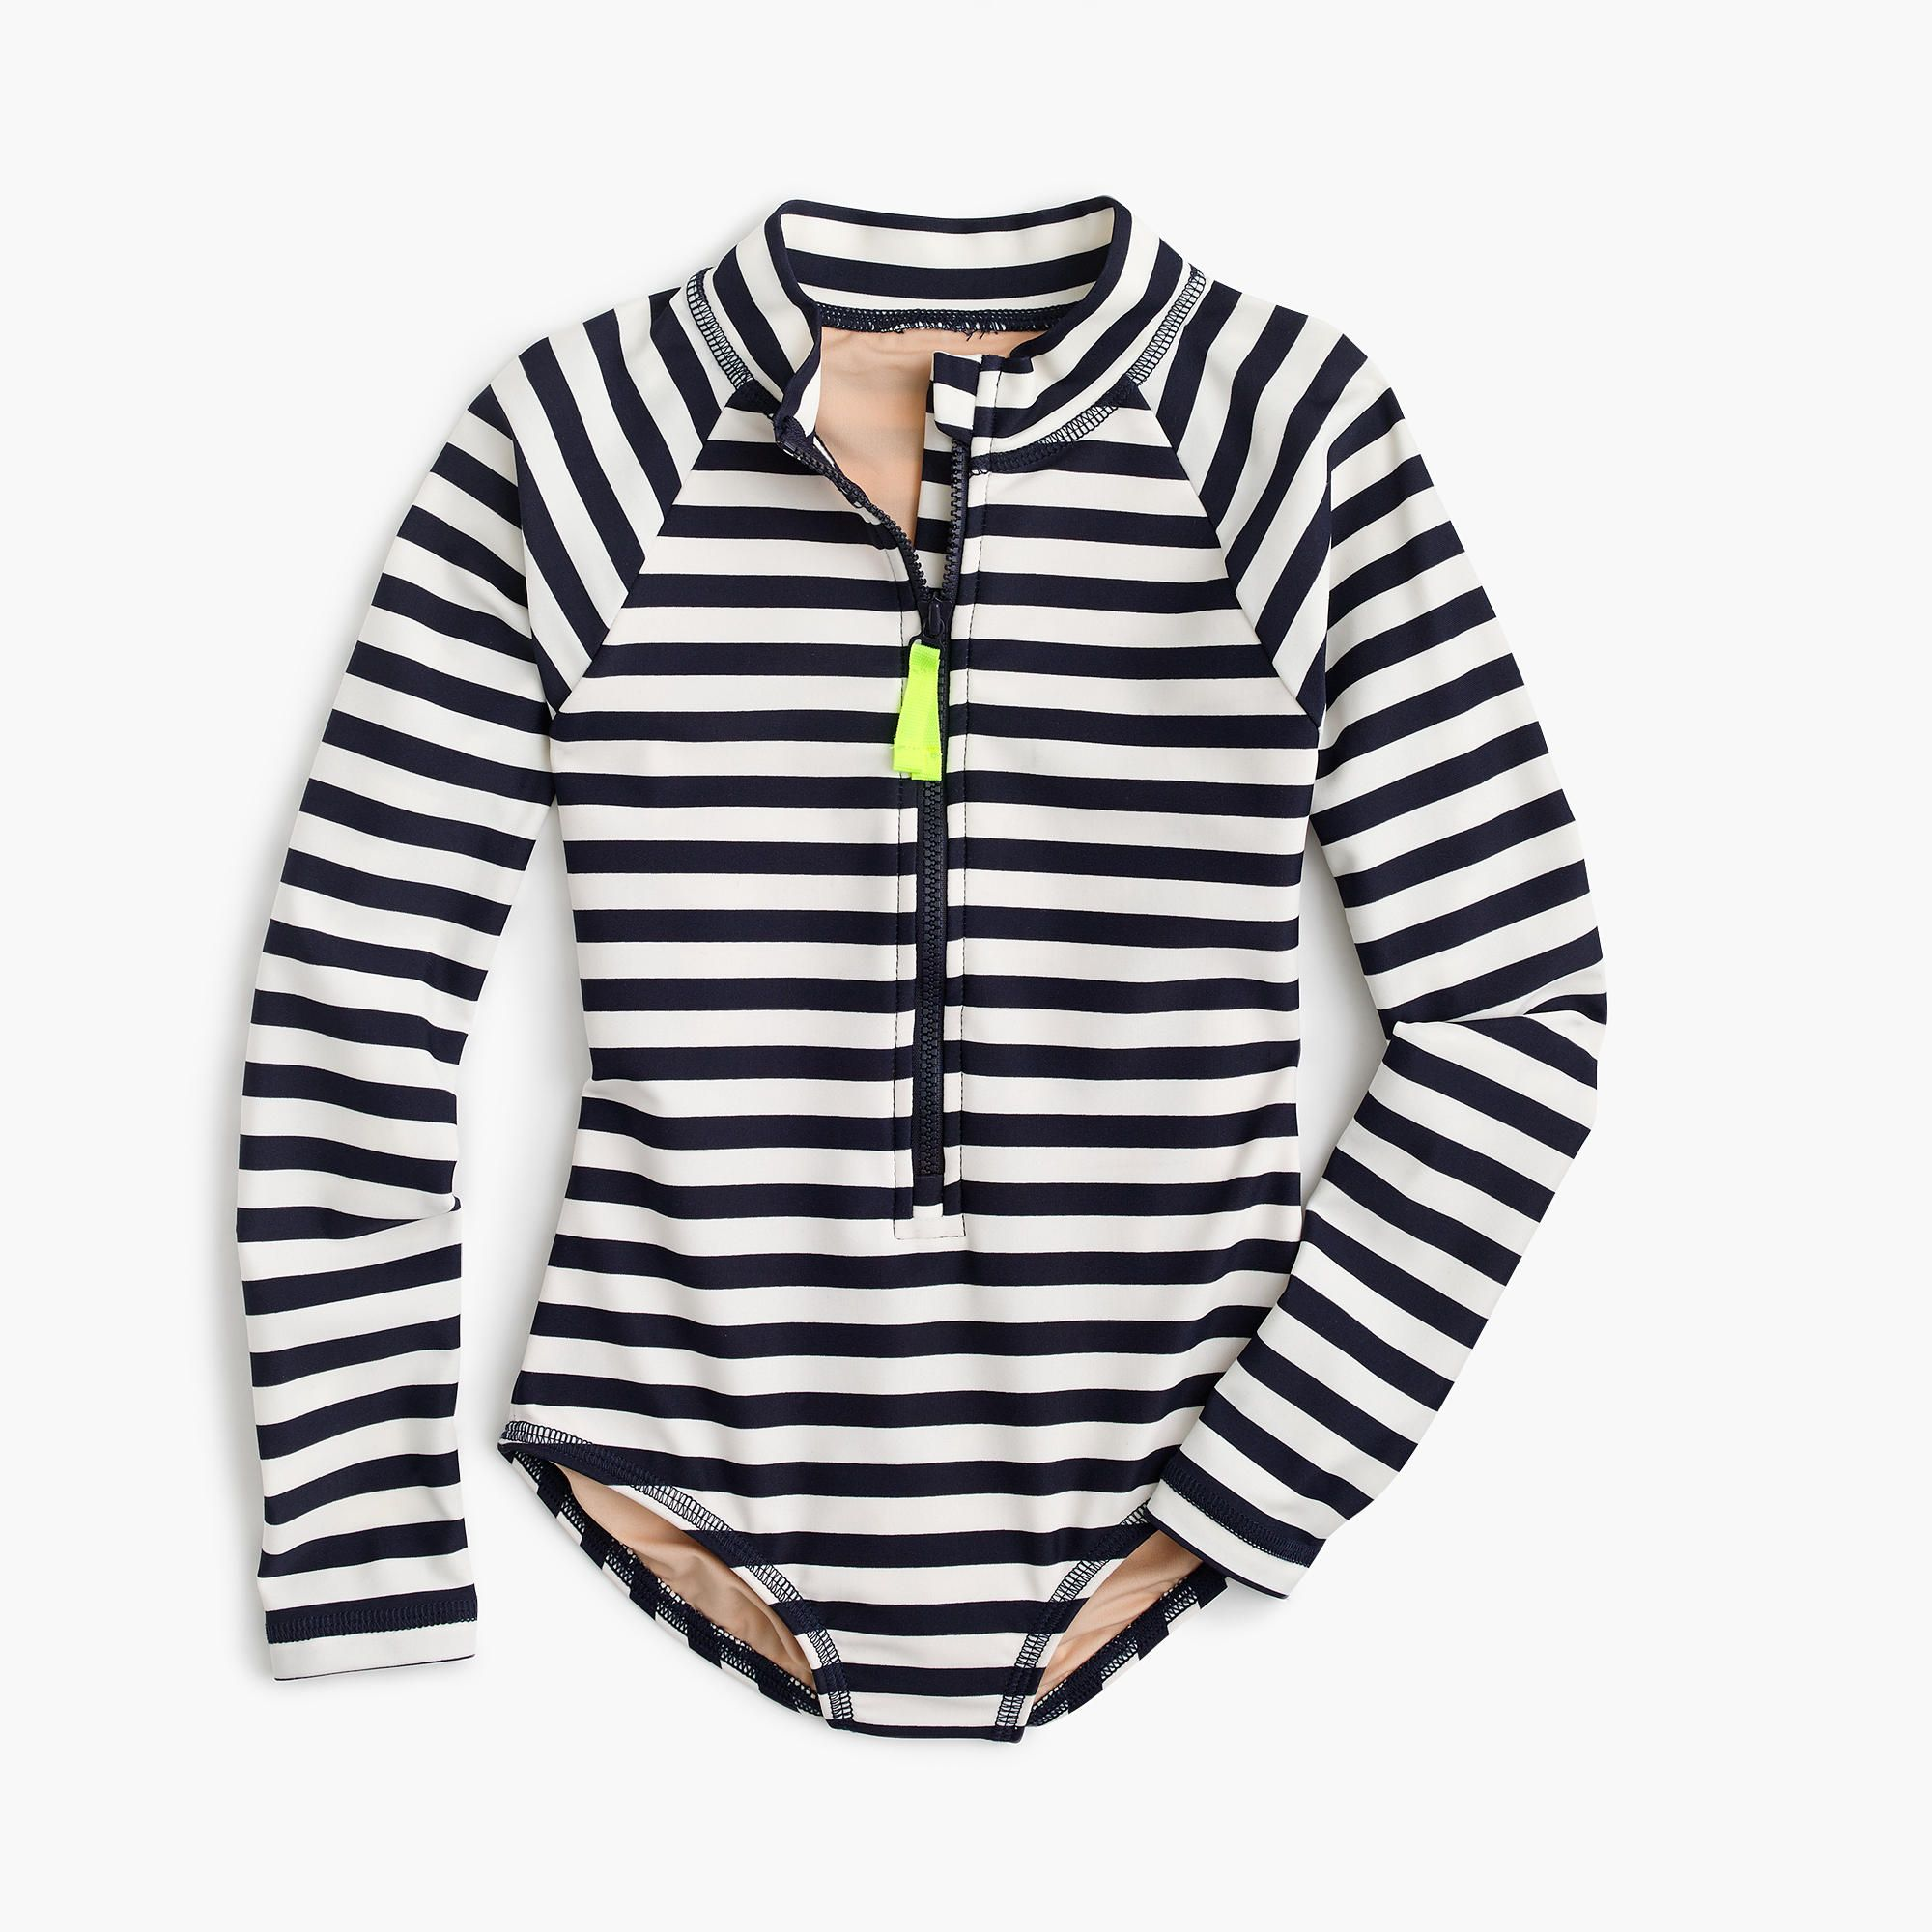 adcb809754693 A rash guard and a one piece all in one! Pair it with some board shorts and  your girl is ready to surf! From J.Crew sizes 3-14